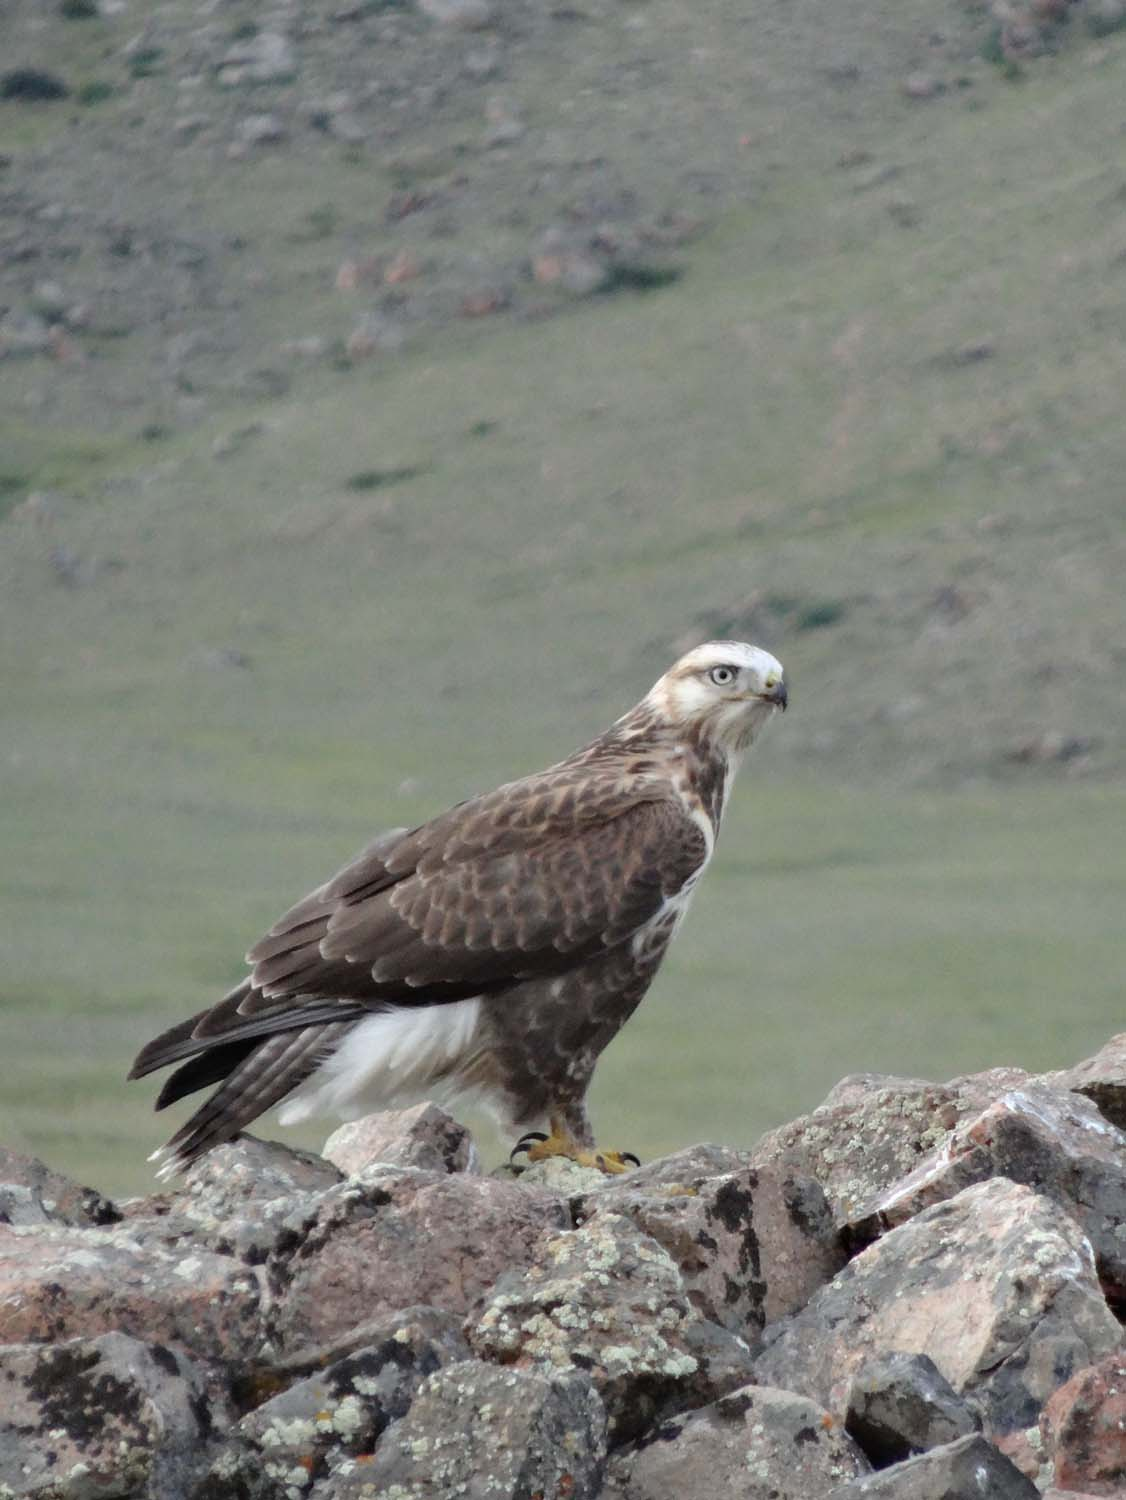 eagles, always looking for marmots or ground squirrels